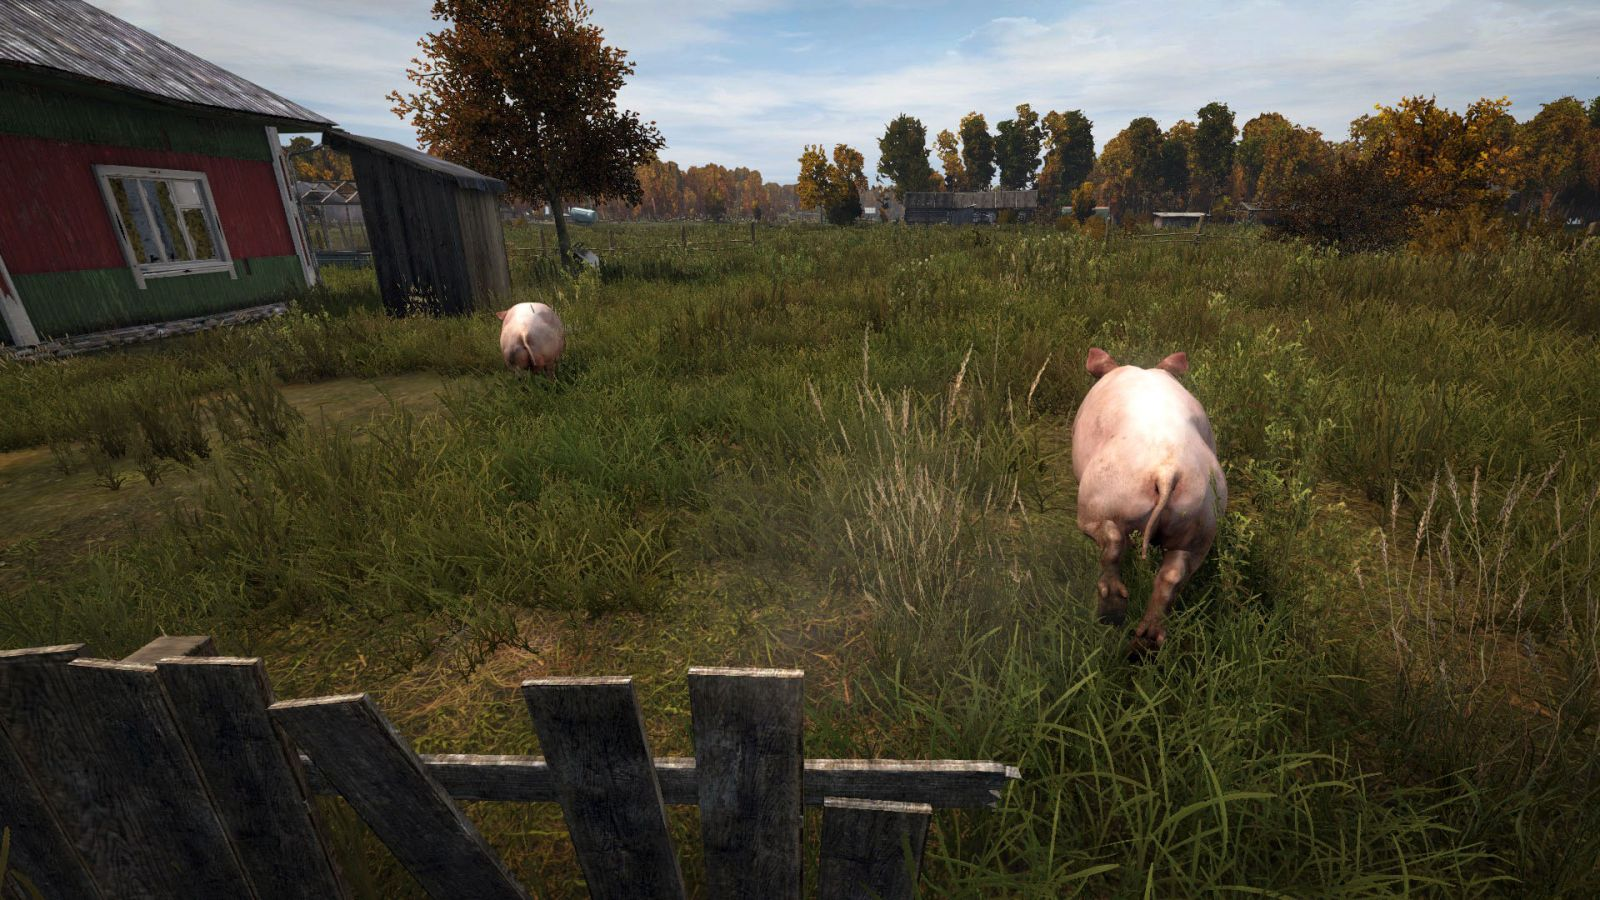 Even pigs are afraid